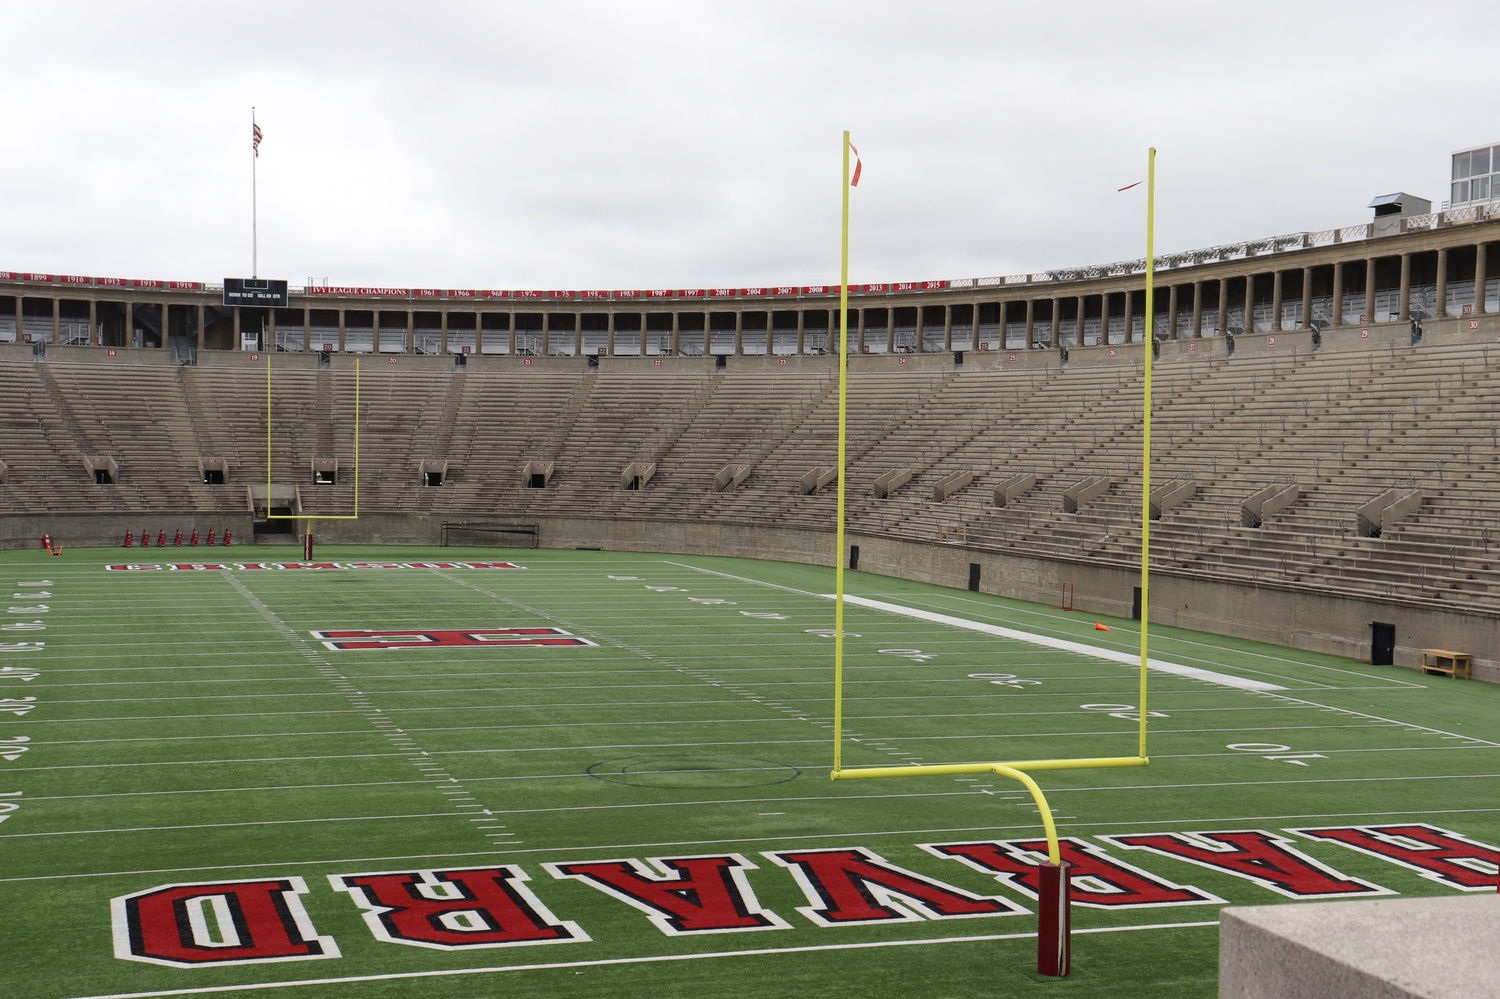 Harvard athletes will not compete in organized play, including local non-conference competition, until at least the fall semester, Harvard Athletics Director Erin McDermott said in an interview Wednesday.